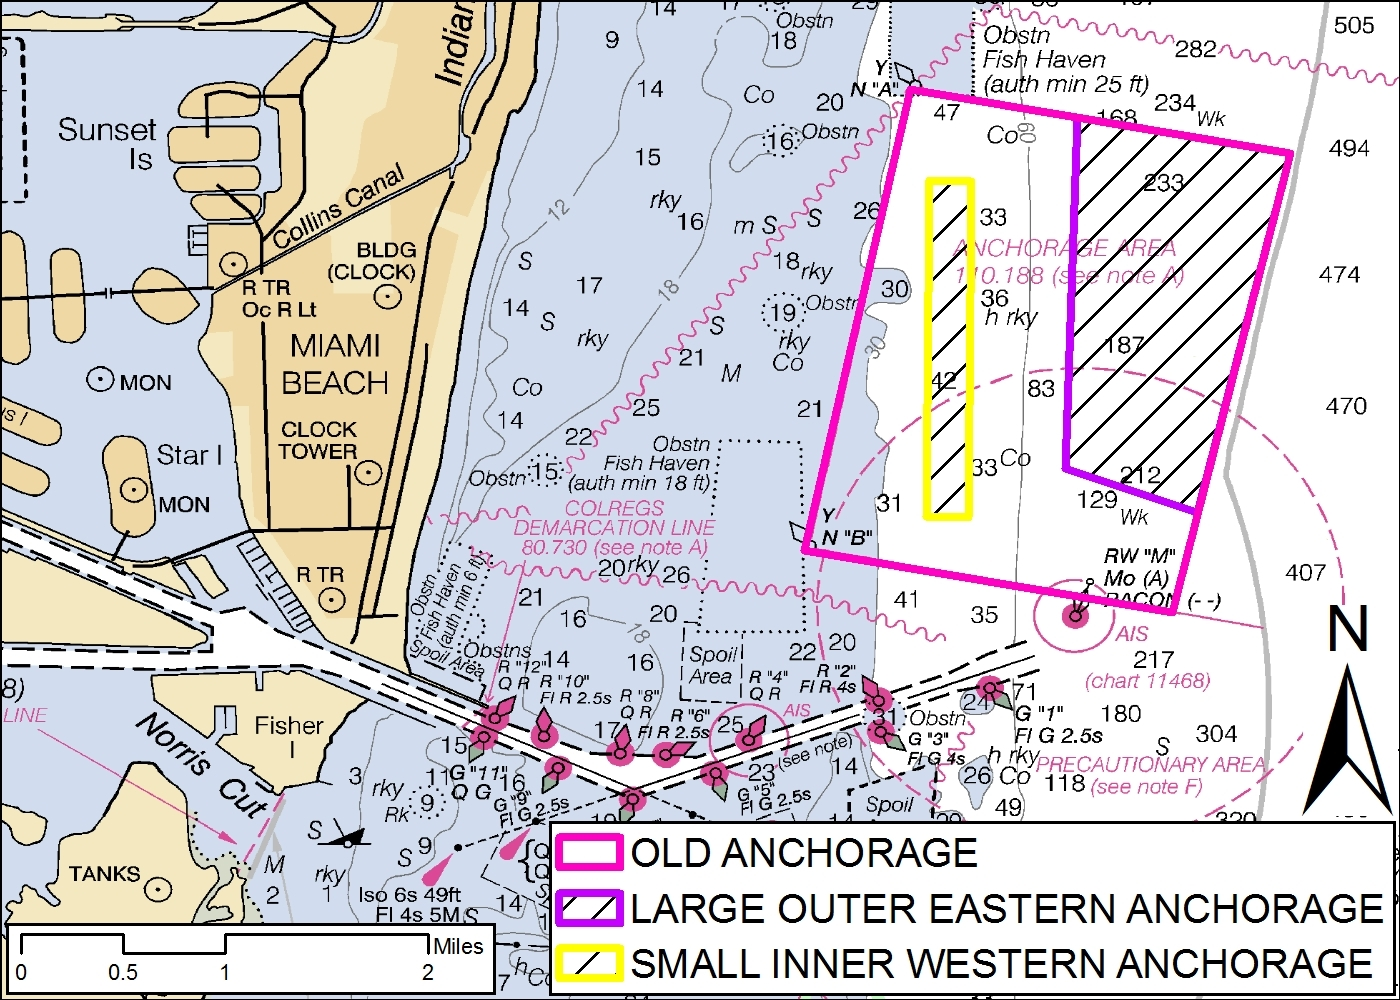 The Coast Guard modified the Port of Miami Anchorage Area July 19 by dividing it into two areas, the inner-western anchorage and the outer-eastern anc